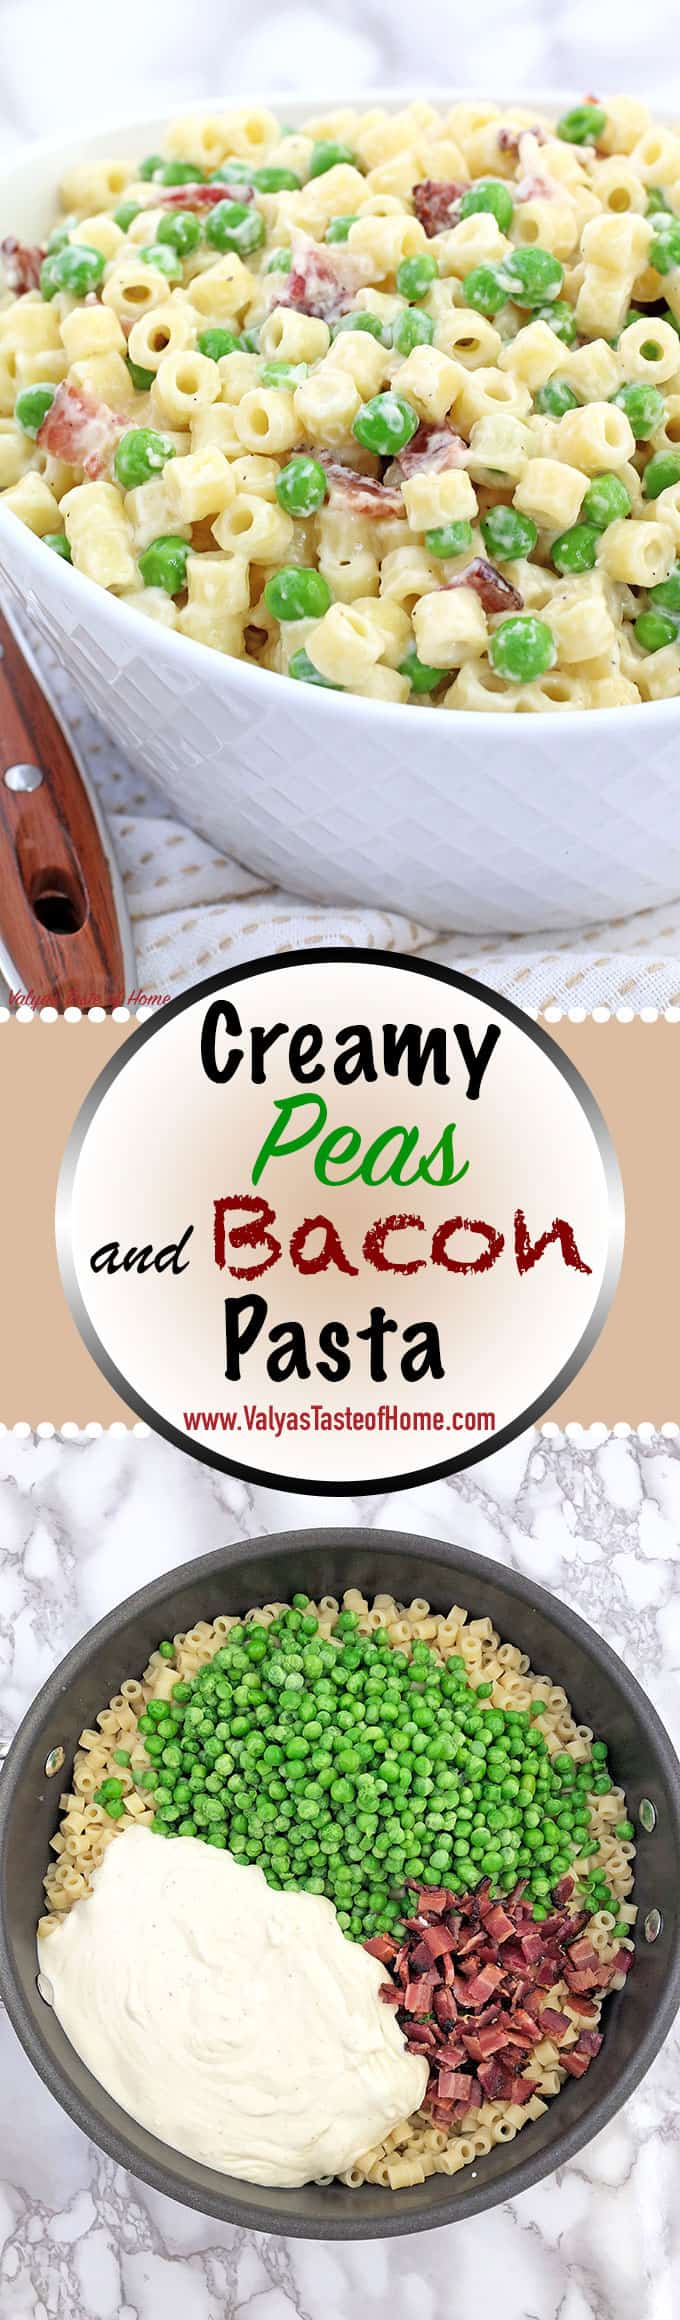 Creamy Peas and Bacon Pasta Recipe, delicious dinner recipe, easy, easy dinner, family dinner, fresh pea, Homemade Creamy Alfredo Sauce, homemade meal, Main Dish, natural bacon, one pan dinner, pasta dinner dish, quick and easy